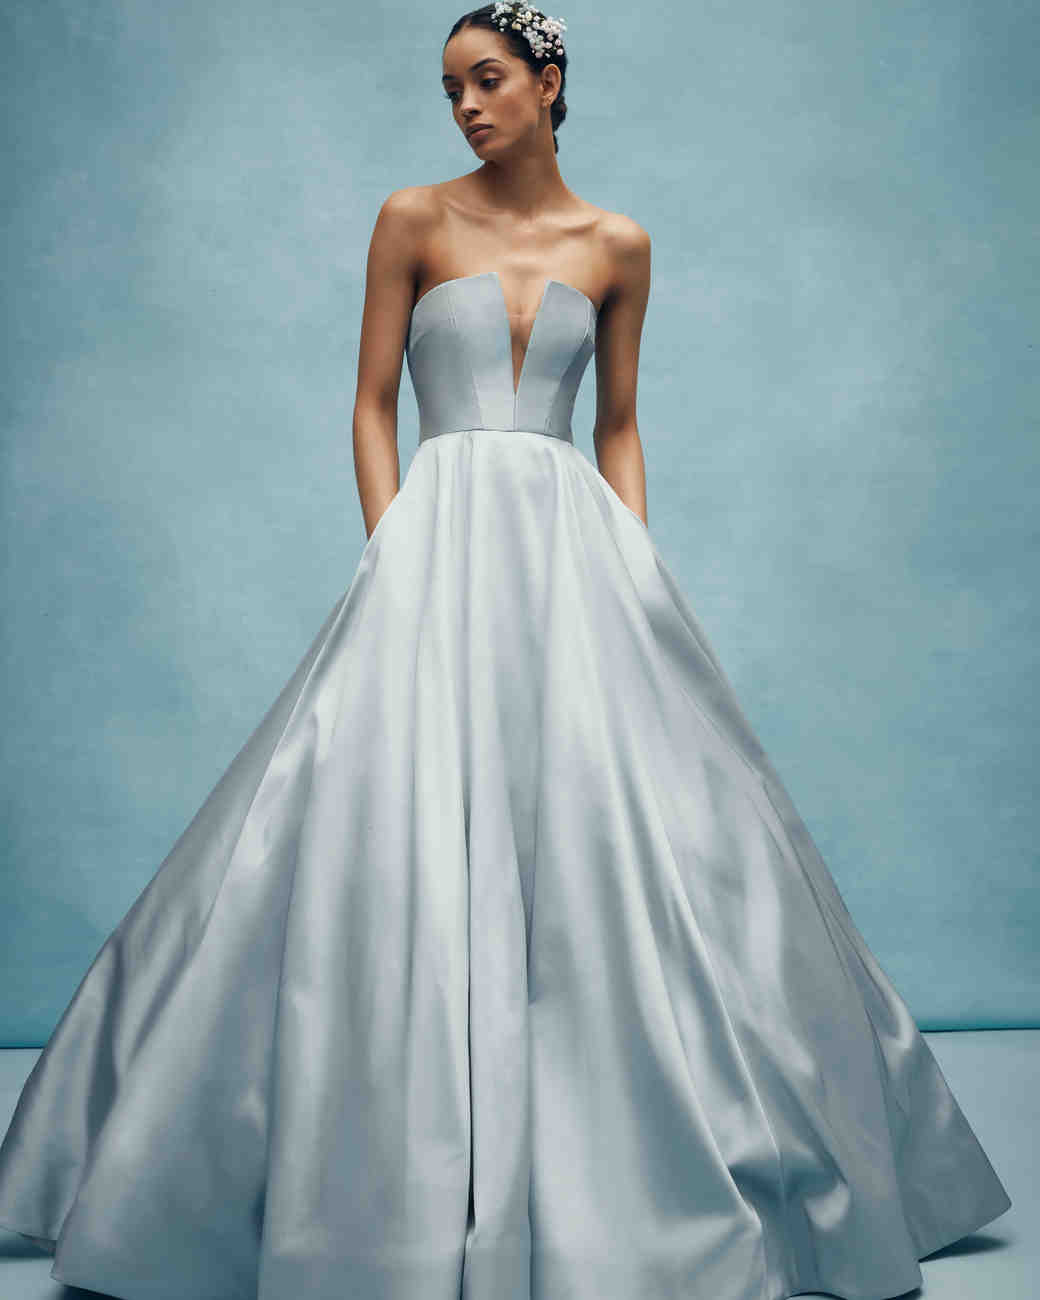 6fc8681f2 Colorful Wedding Dresses That Make a Statement Down the Aisle ...